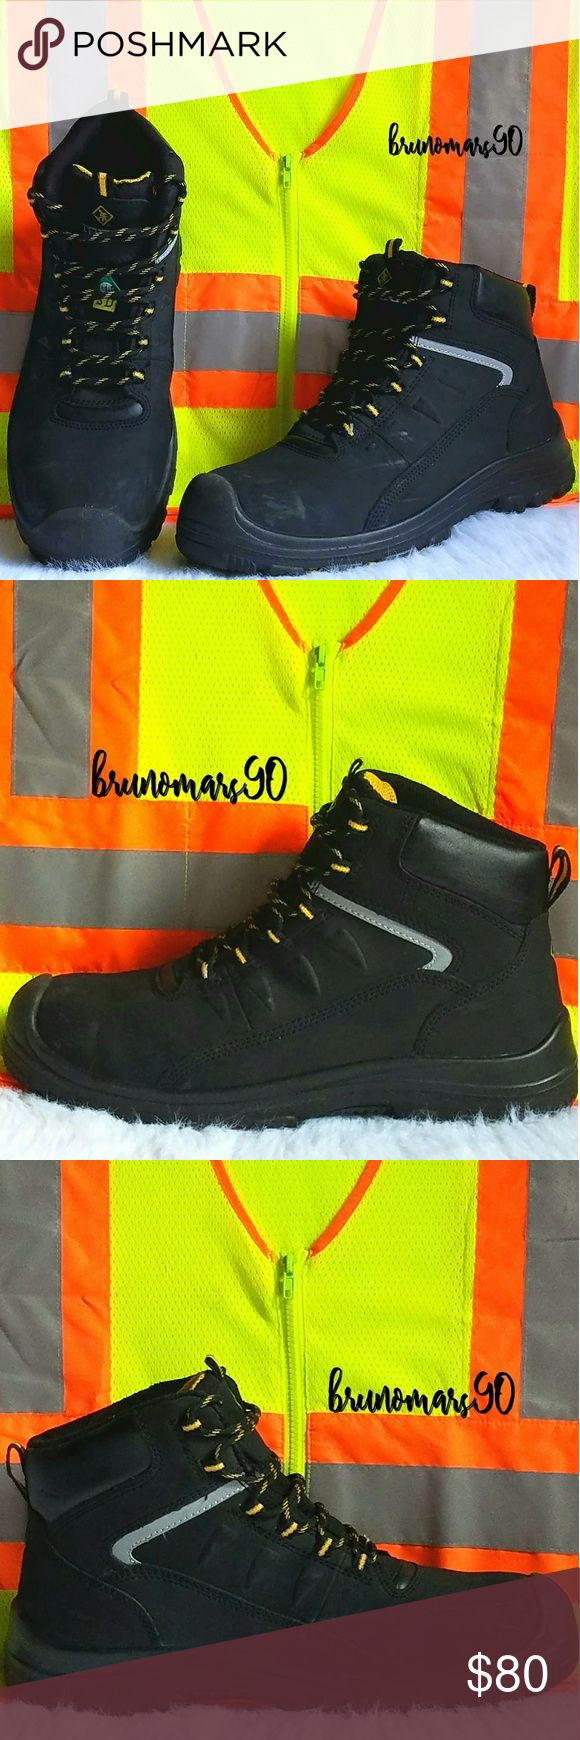 """Men's Findlay 6-Inch Waterproof Work Boots For the hardworking individual; work boots designed to fit your lifestyle. Worn three times max, still in clean/very good condition, with original box included. Minor scuffs on both tip of shoes, (see pic #6 & #7). Bottom soles are hardly marked. Special Features: removable insoles, rubber sole, safety toe, slip-resistant (non-skid). Shaft Height: 6"""". Circumference: 12"""". Size 13. Terra Shoes Boots"""